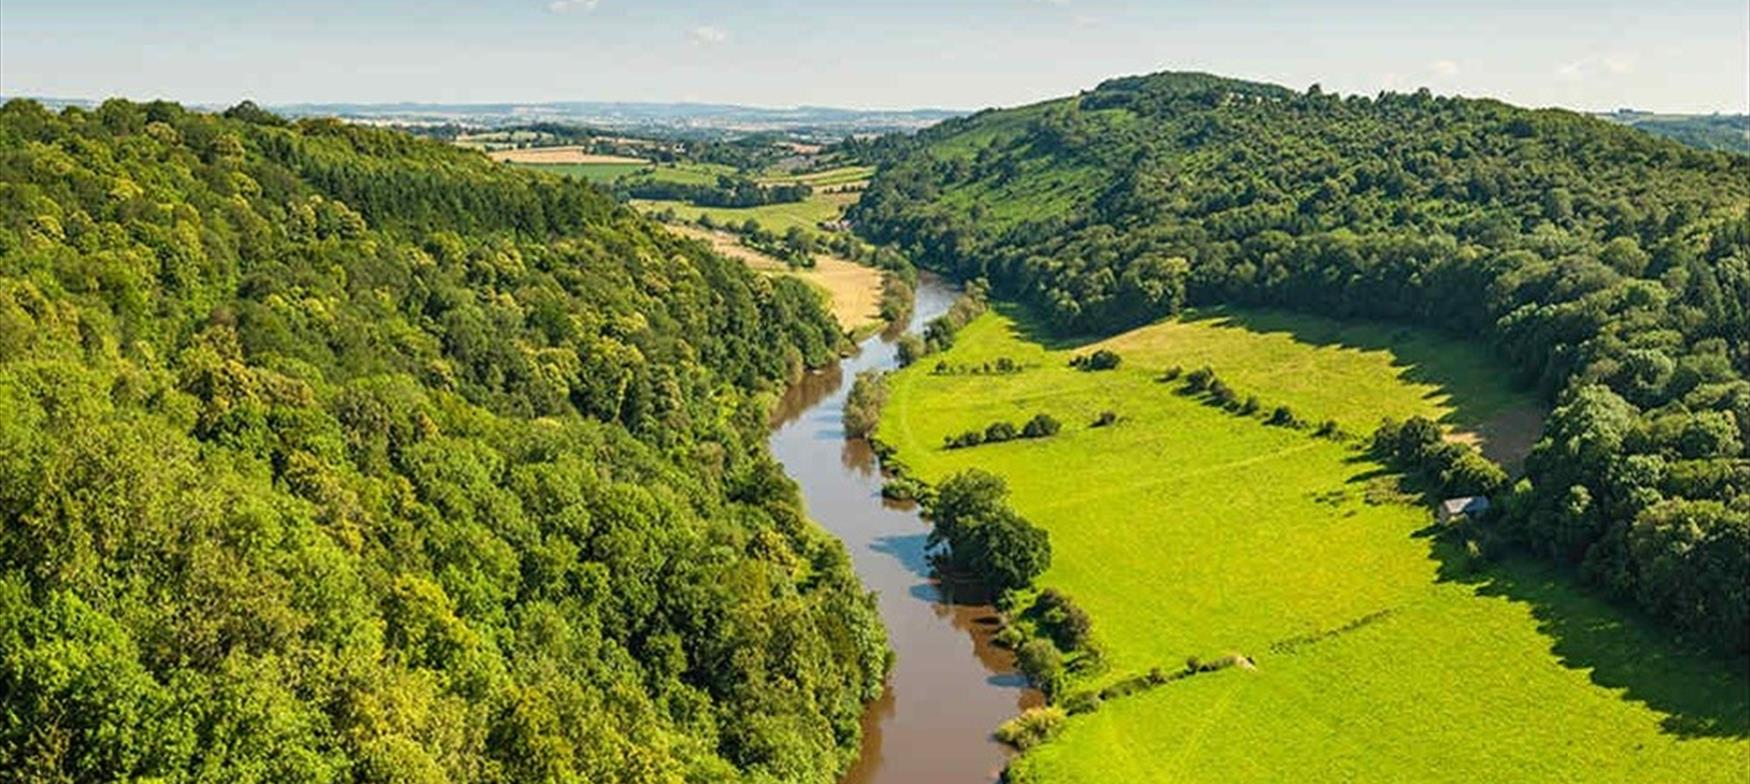 The Forest of Dean from above